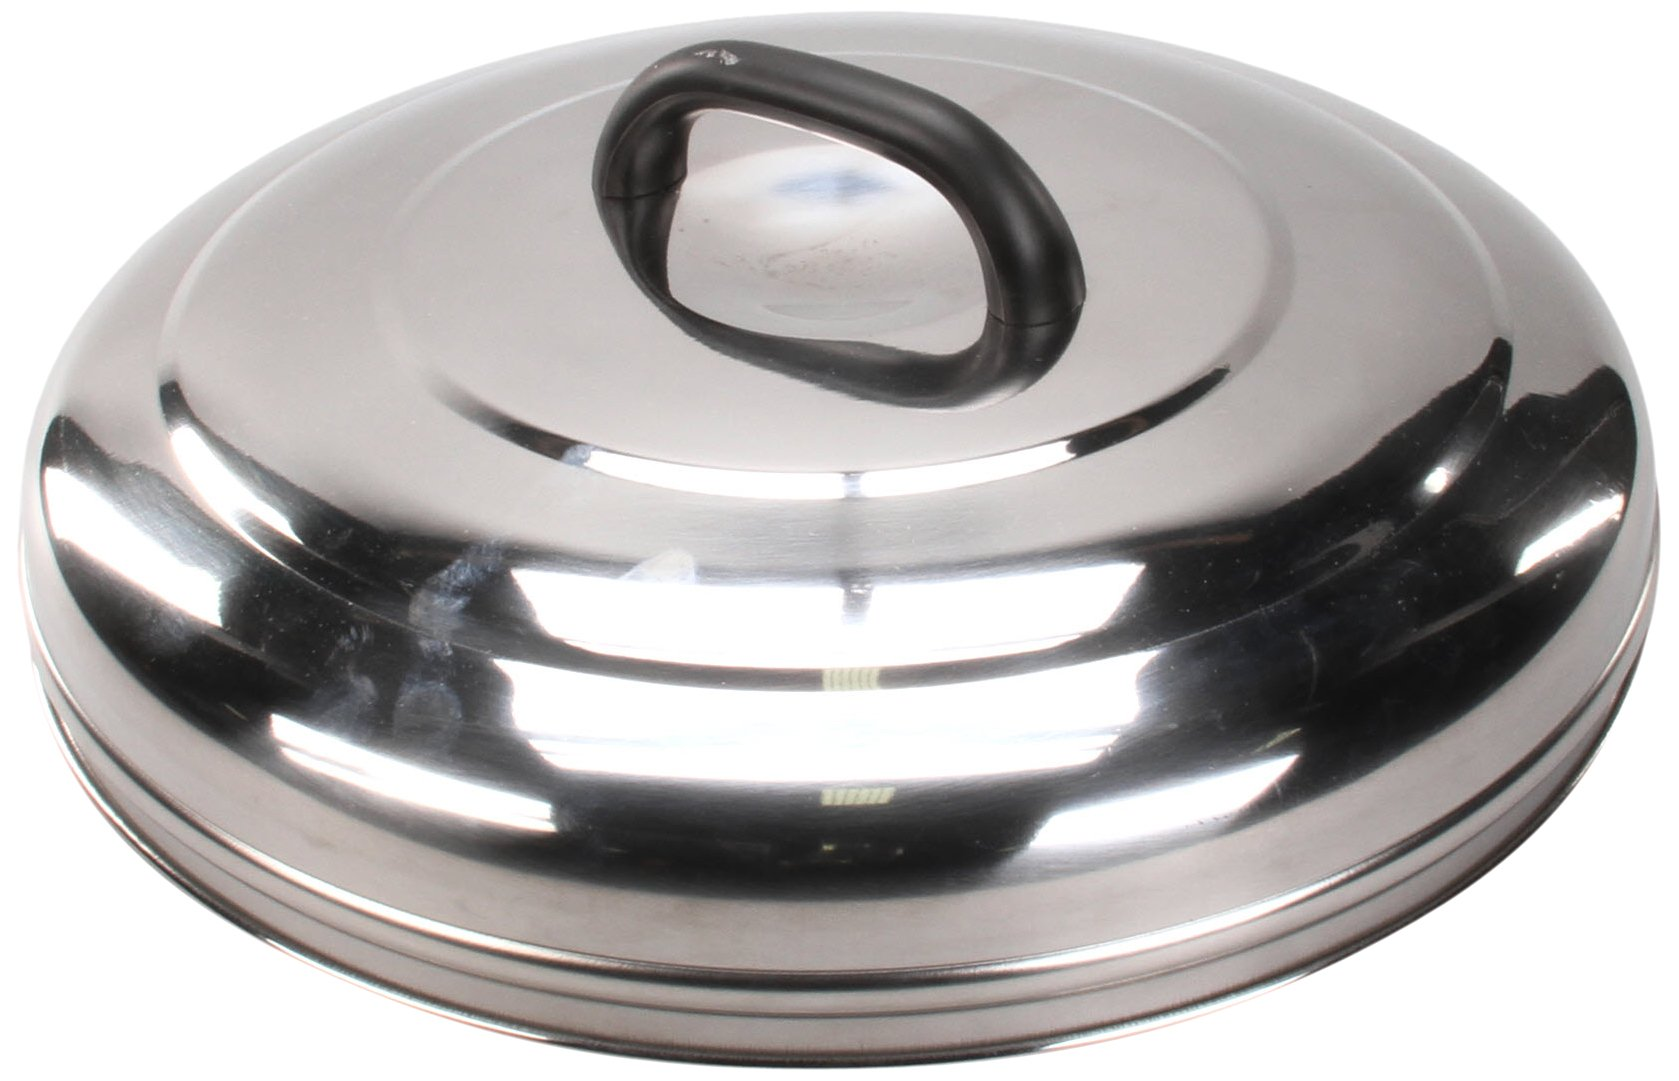 Town Food Service 57202 Stainless Steel Cover with Handle